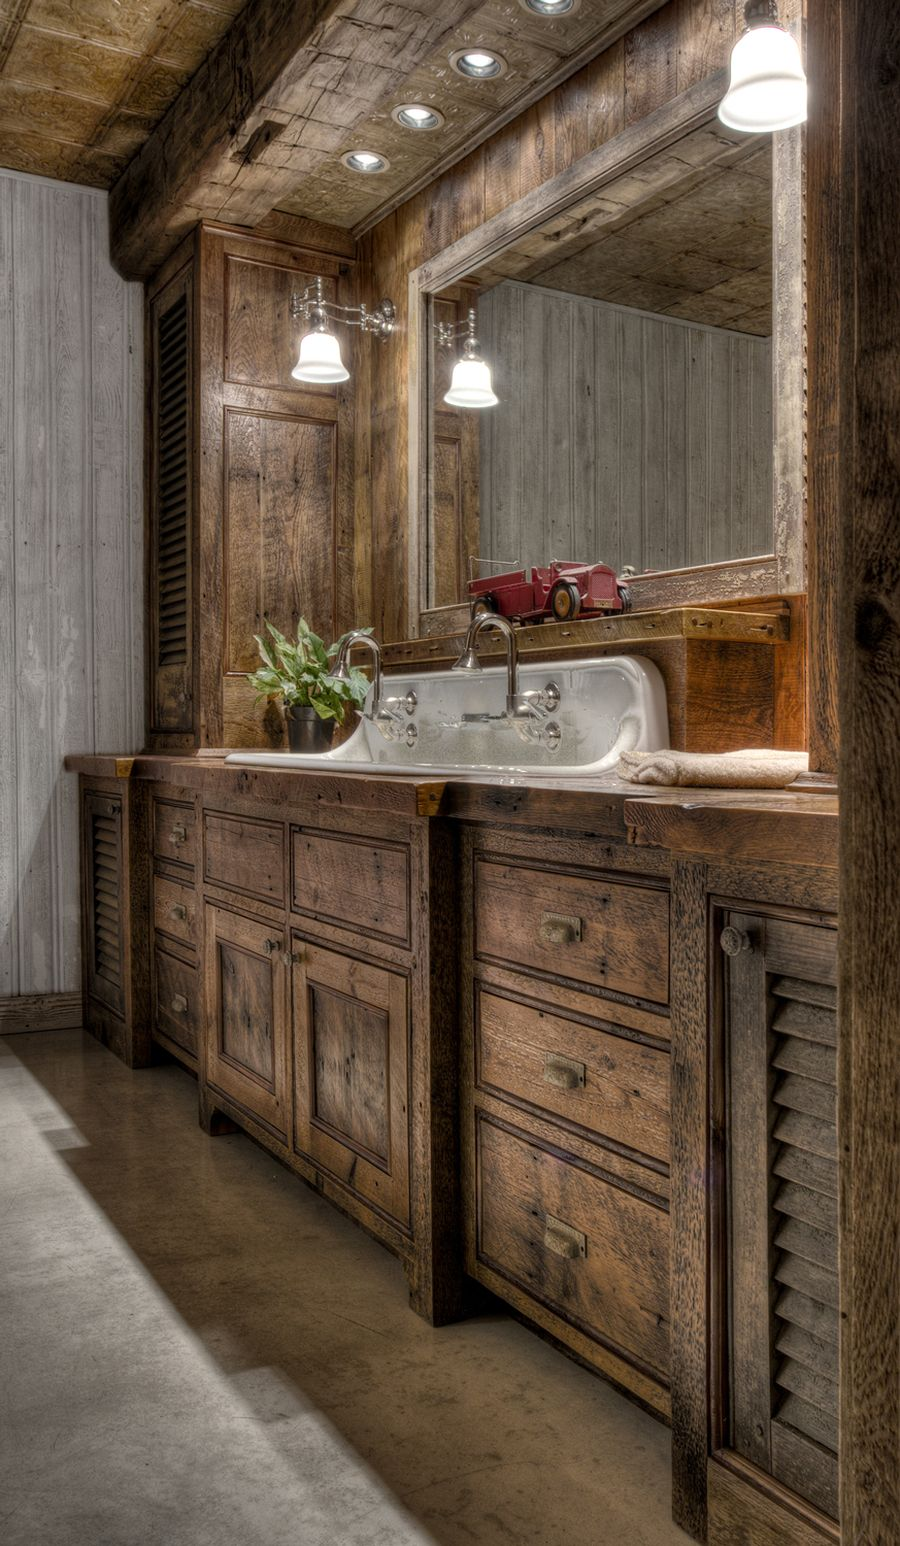 Rustic farmhouse style bathroom design ideas 58 - Hoommy.com